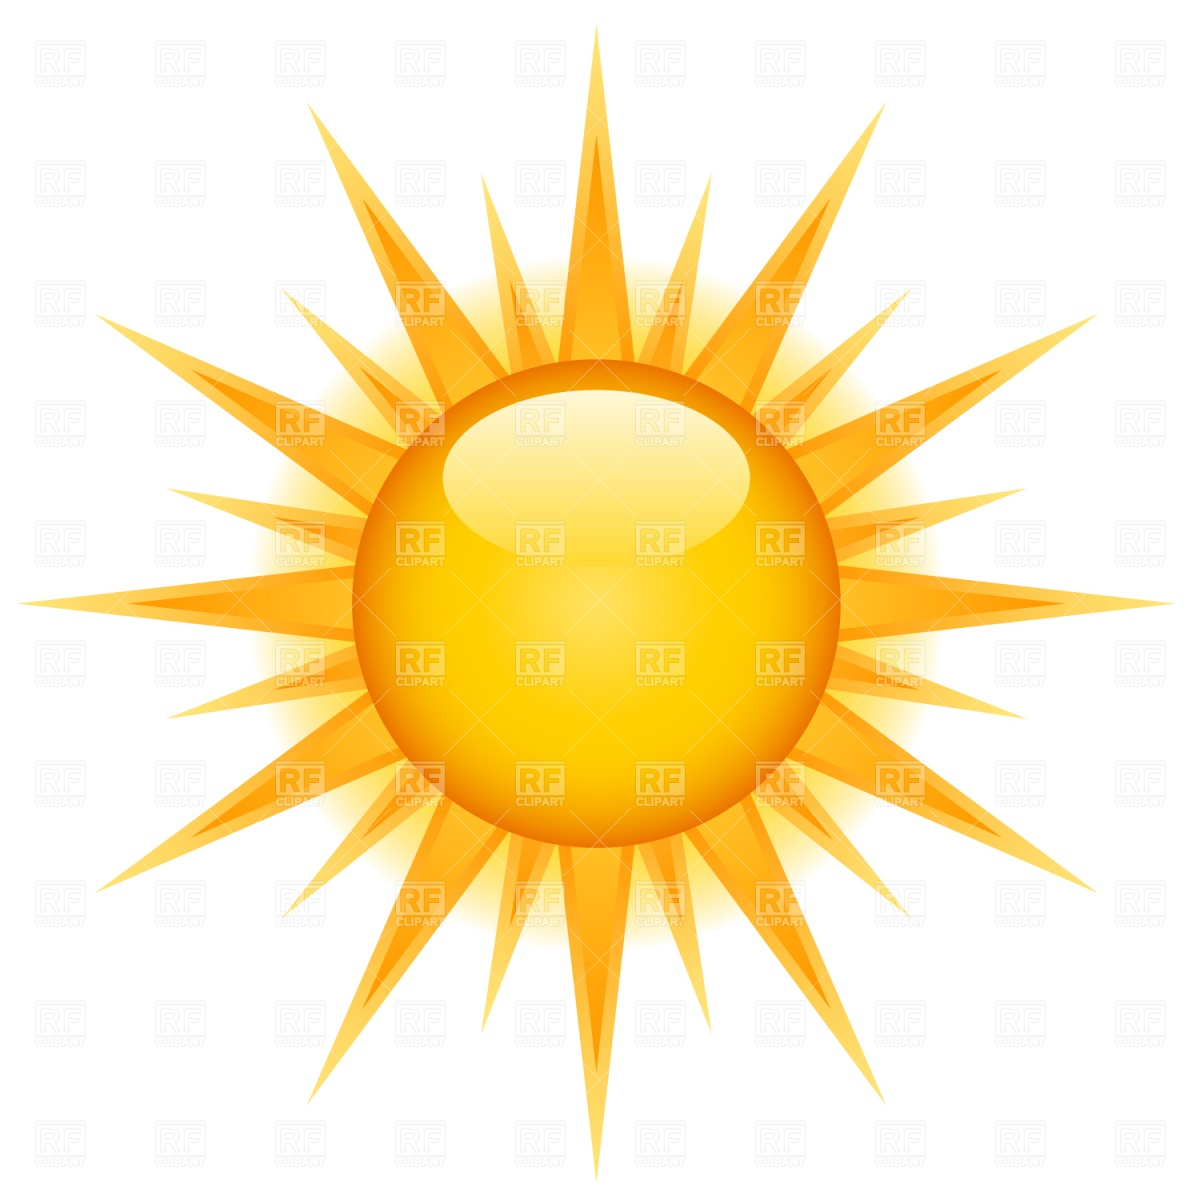 Glossy Sun Icon 1526 Icons And Emblems D-Glossy Sun Icon 1526 Icons And Emblems Download Royalty Free Vector-17